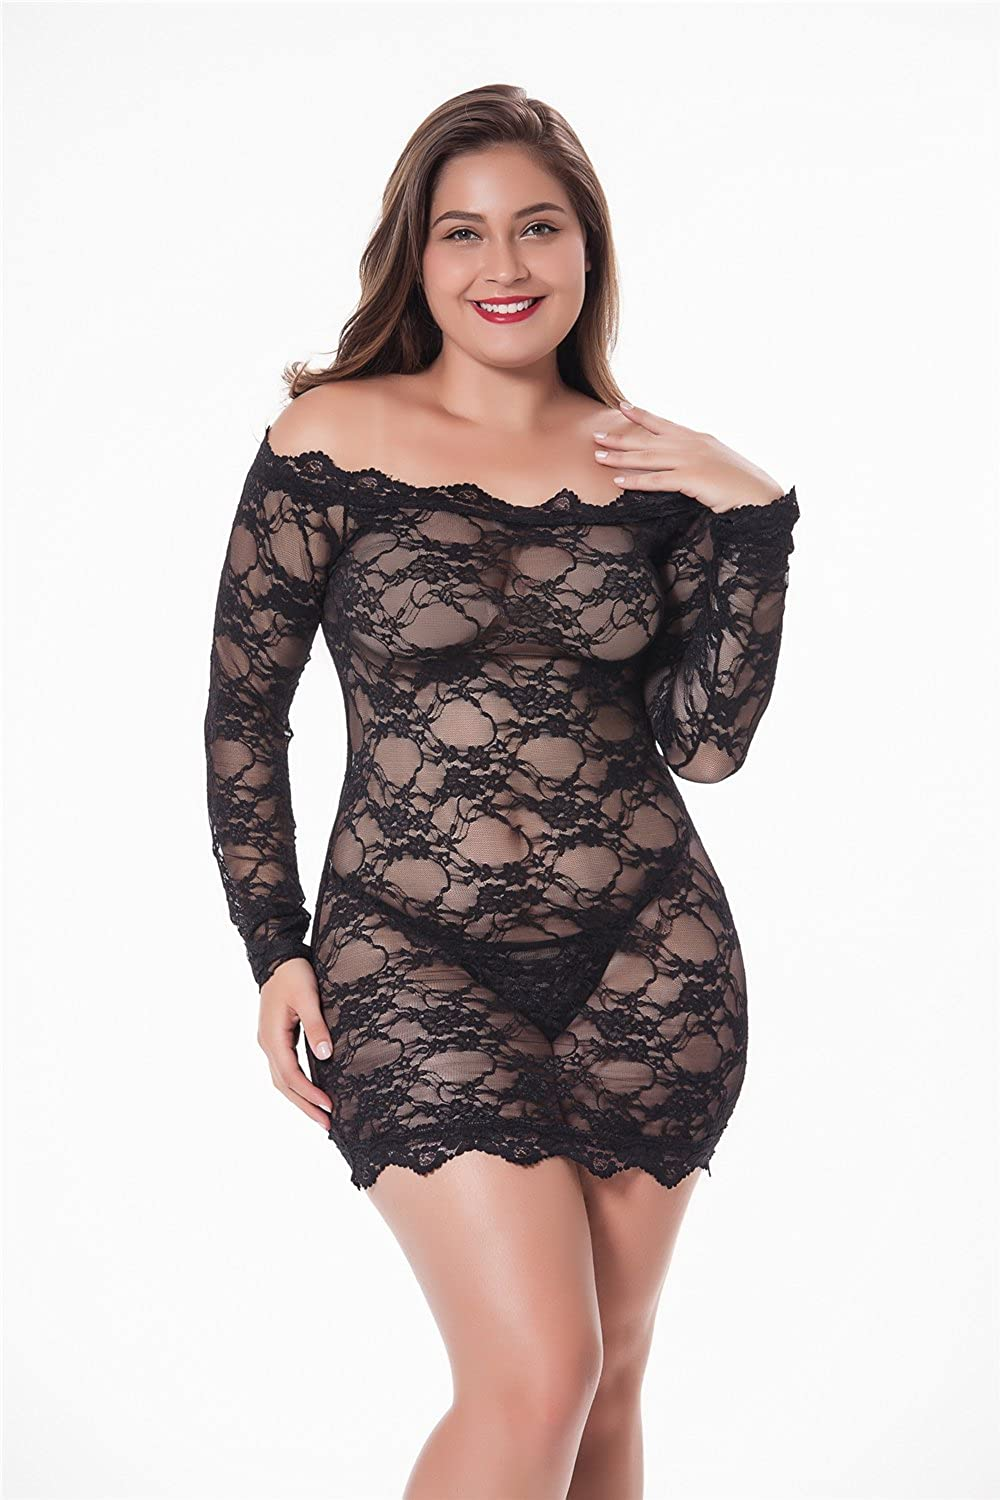 ac85919f967 Top 10 wholesale 4x Lingerie - Chinabrands.com